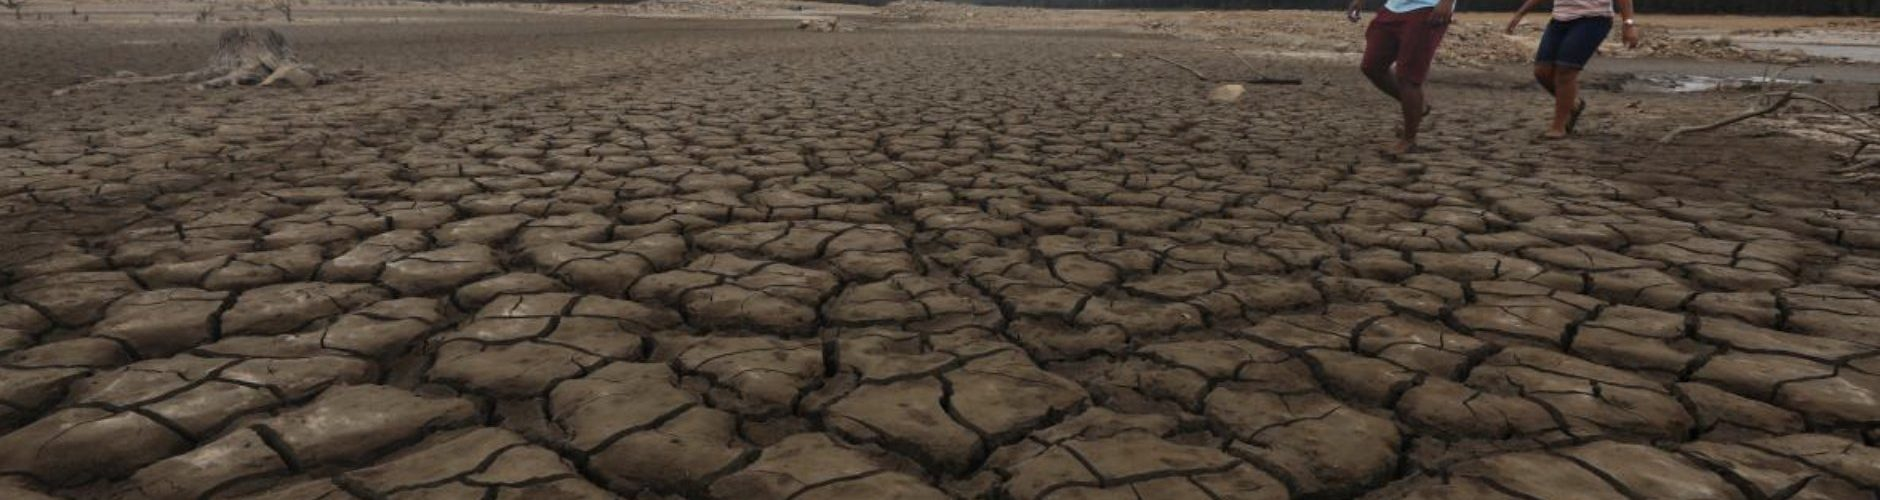 """Cape Town water crisis current situation; """"Day Zero"""" in Western Cape"""